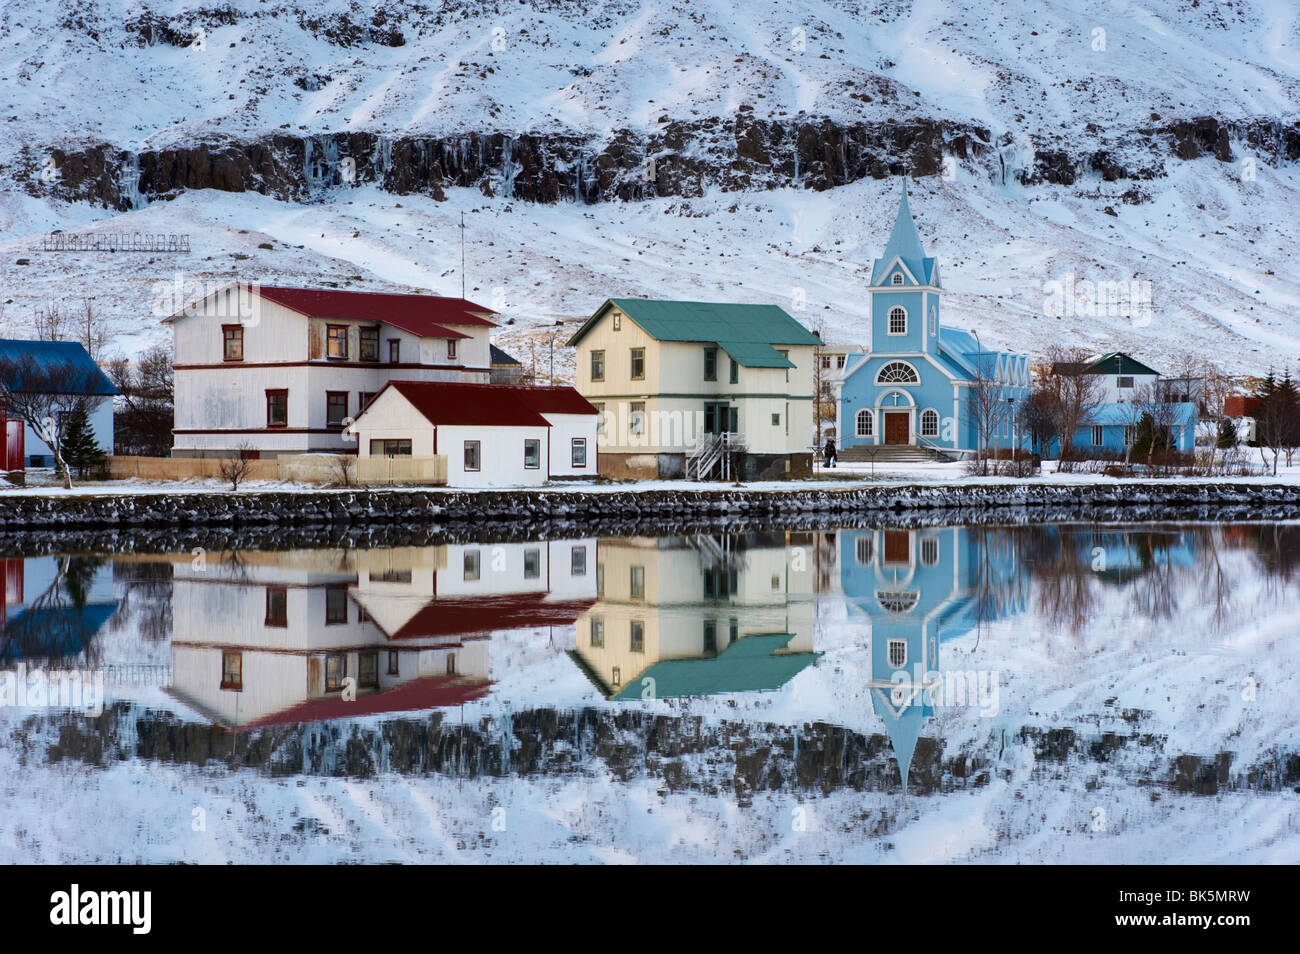 Traditional wooden church, built in 1922, at Seydisfjordur, Iceland - Stock Image